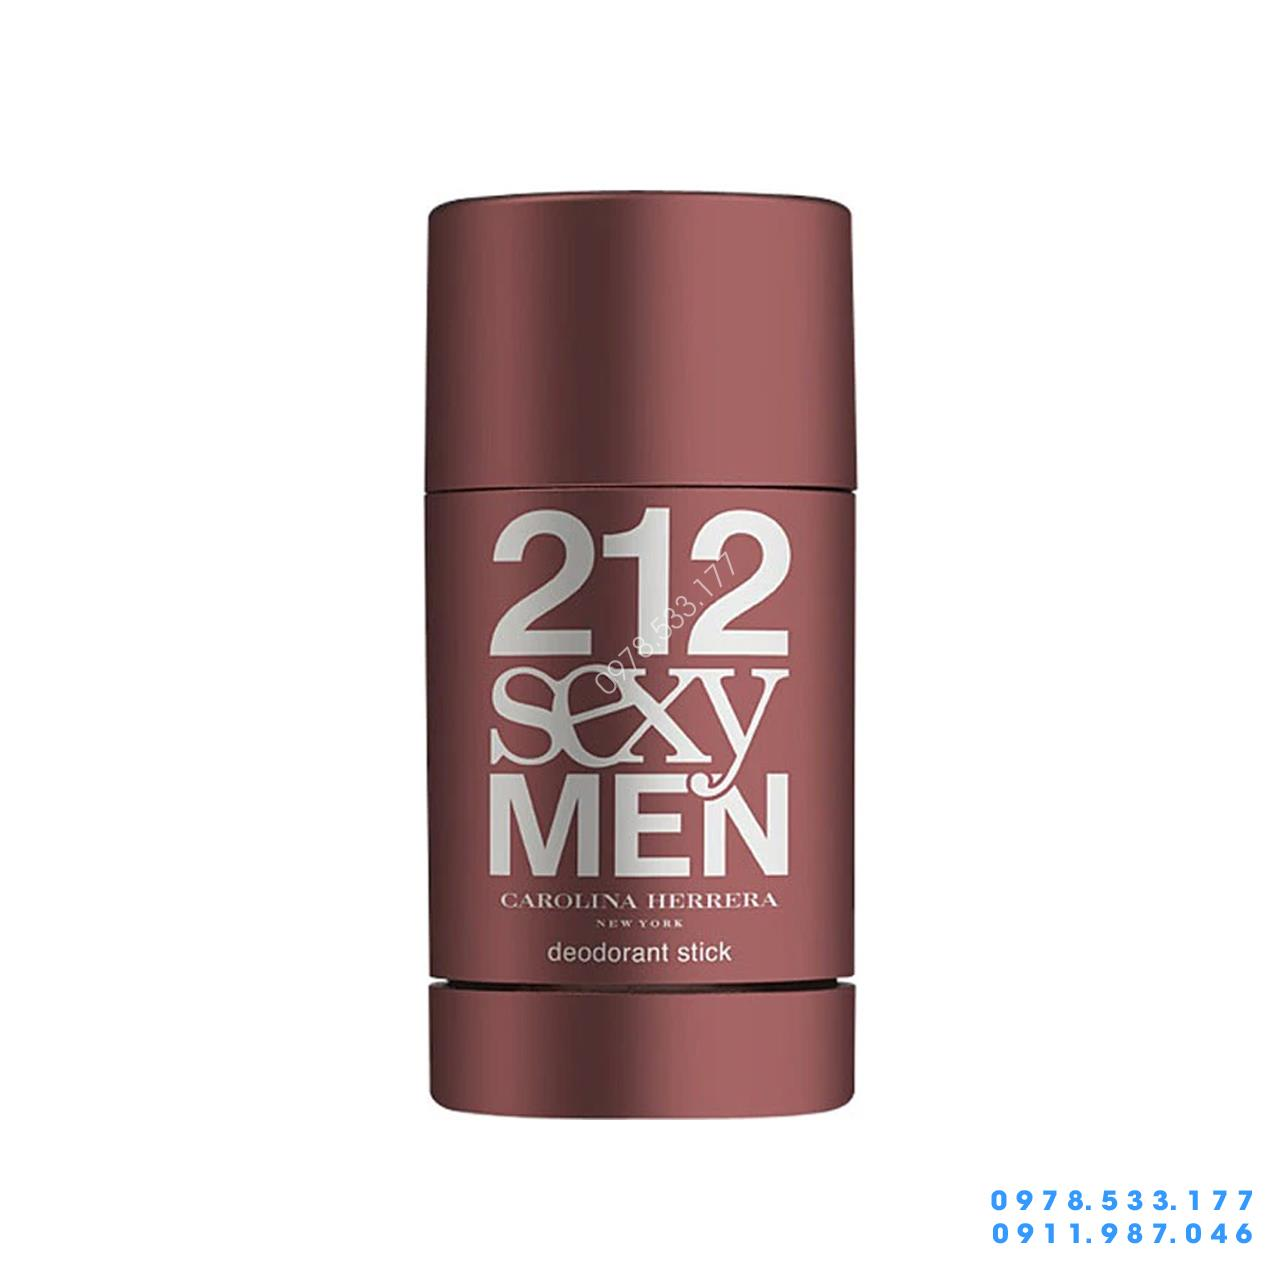 lan-khu-mui-nam-212-men-sexy-carolina-herrera-deodorant-stick-75ml-chinh-hang-sap-pn100028